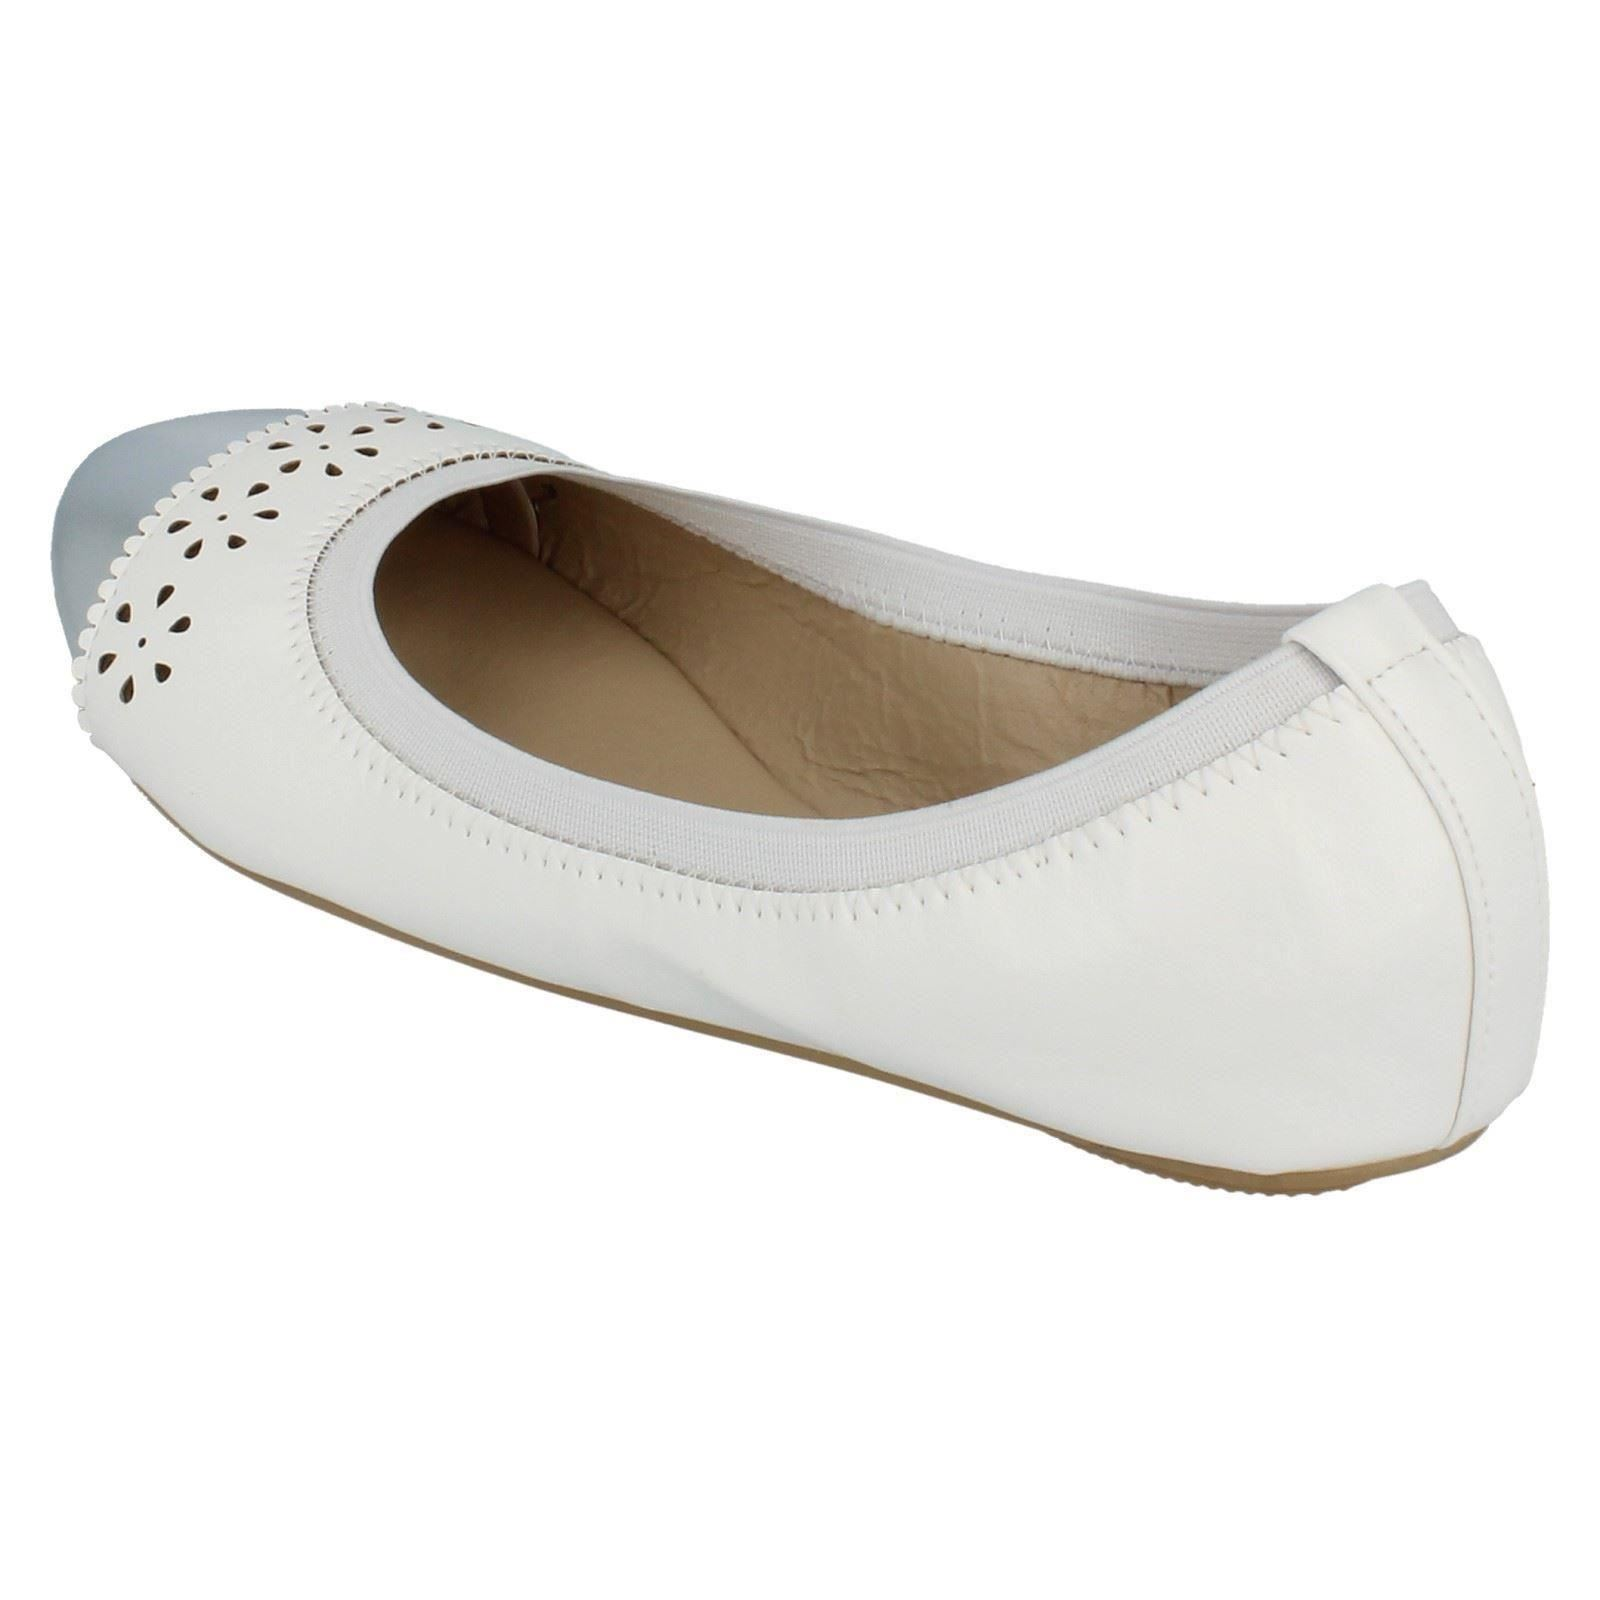 Girls Spot On Flat Dolly Shoes Style - H2410 - D